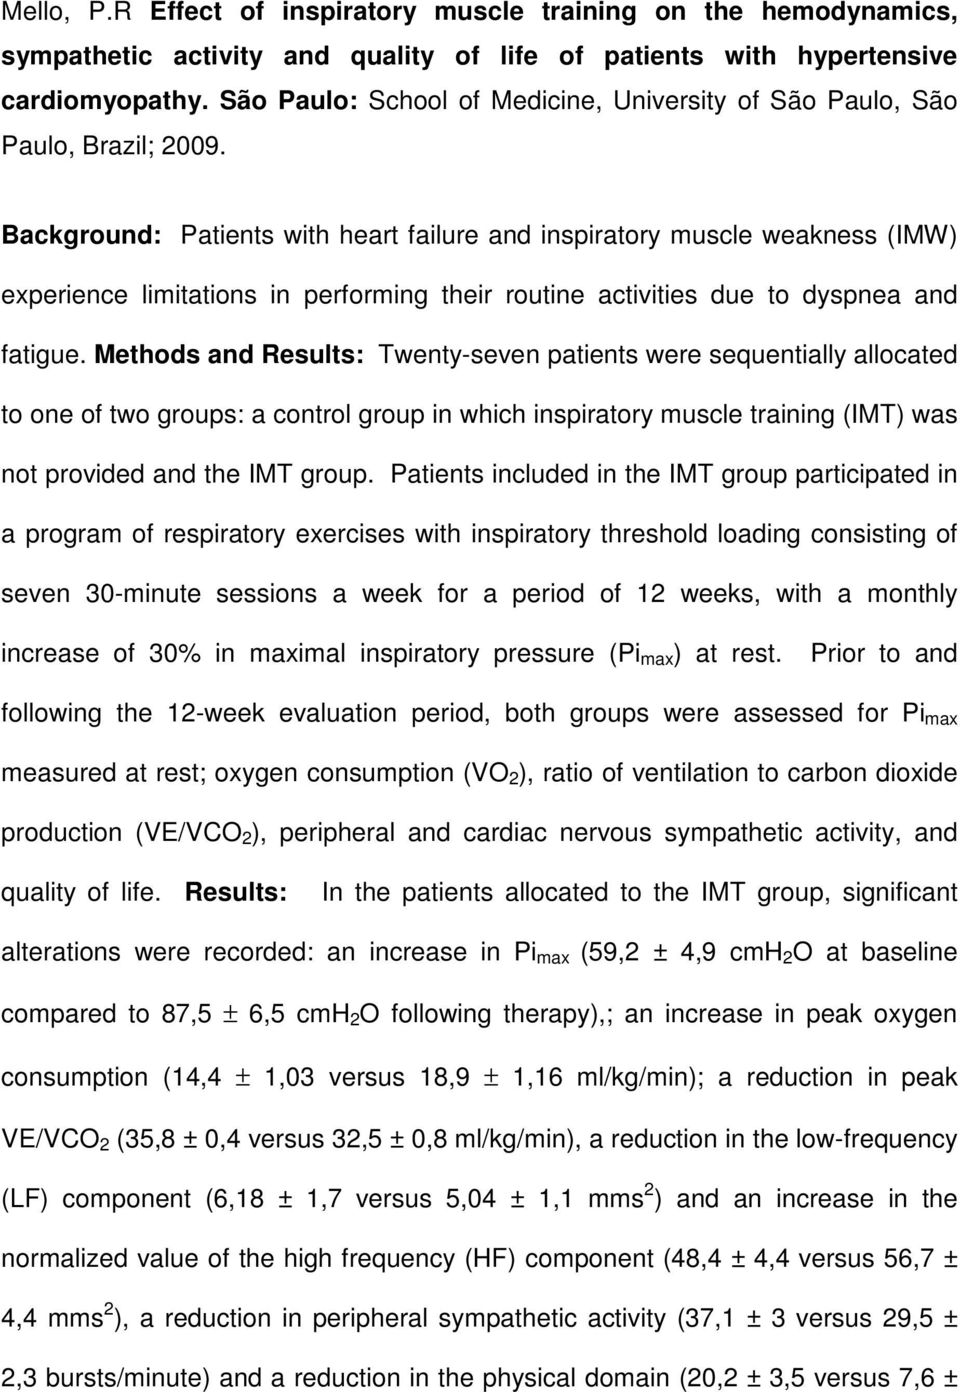 Background: Patients with heart failure and inspiratory muscle weakness (IMW) experience limitations in performing their routine activities due to dyspnea and fatigue.